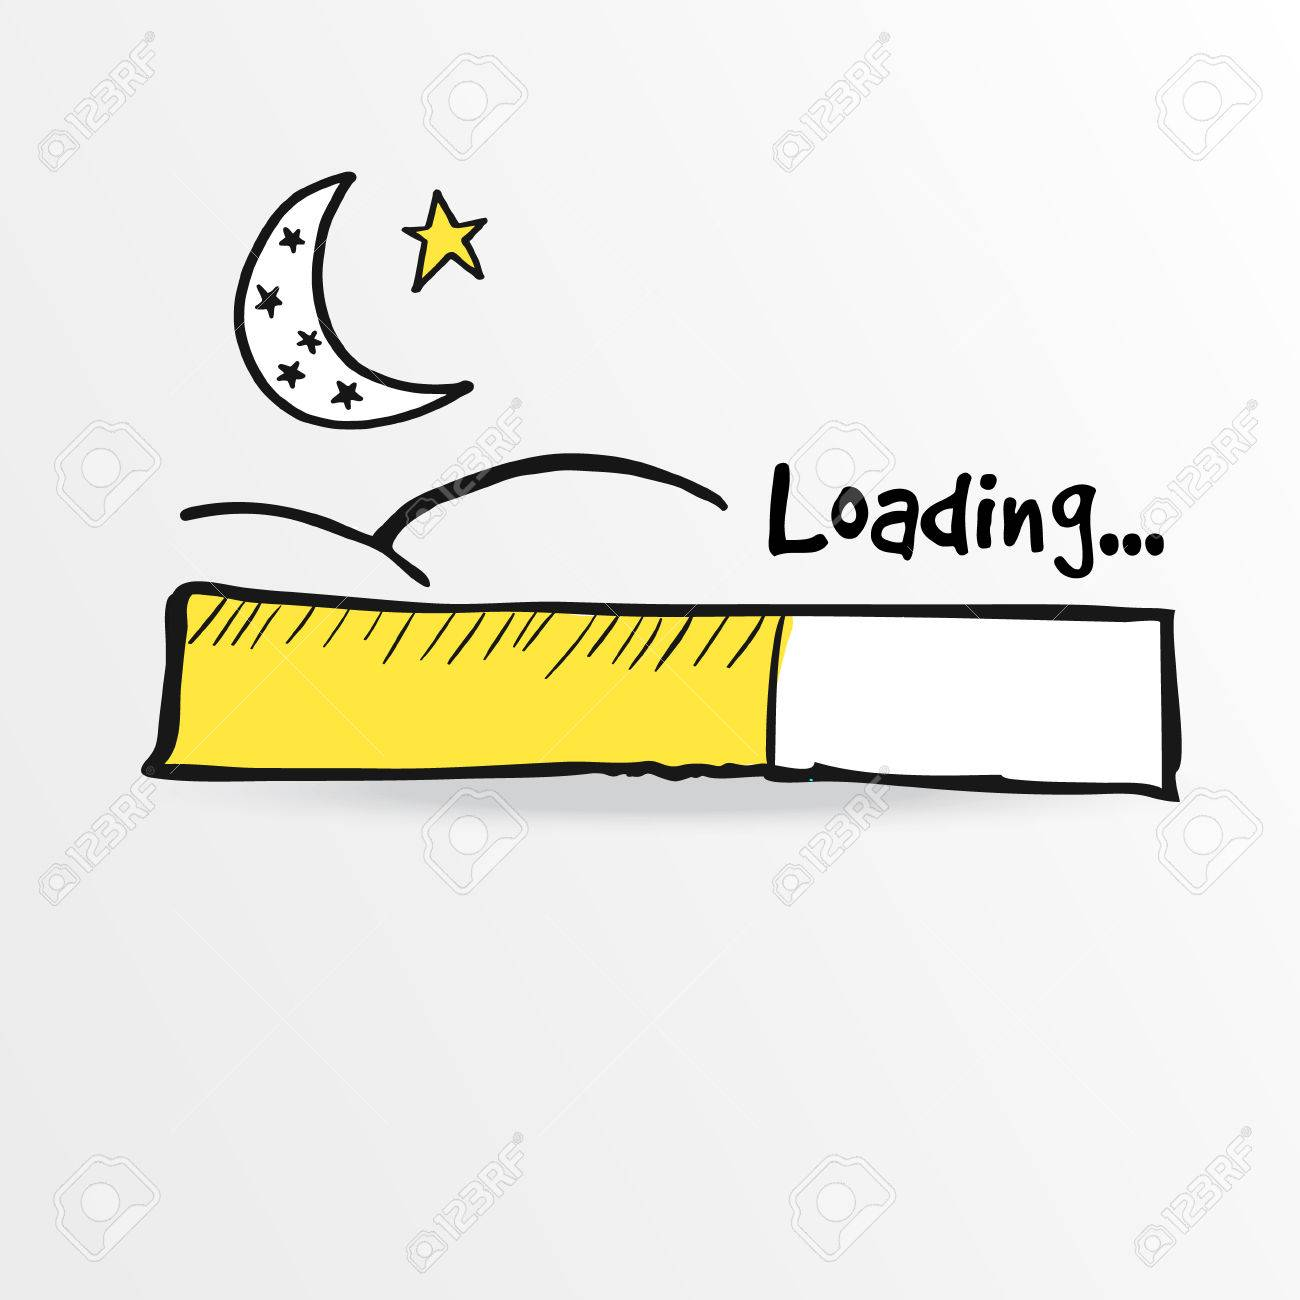 Loading bar with moon and star, vector illustration sketch for holy month Ramadan - 42920252